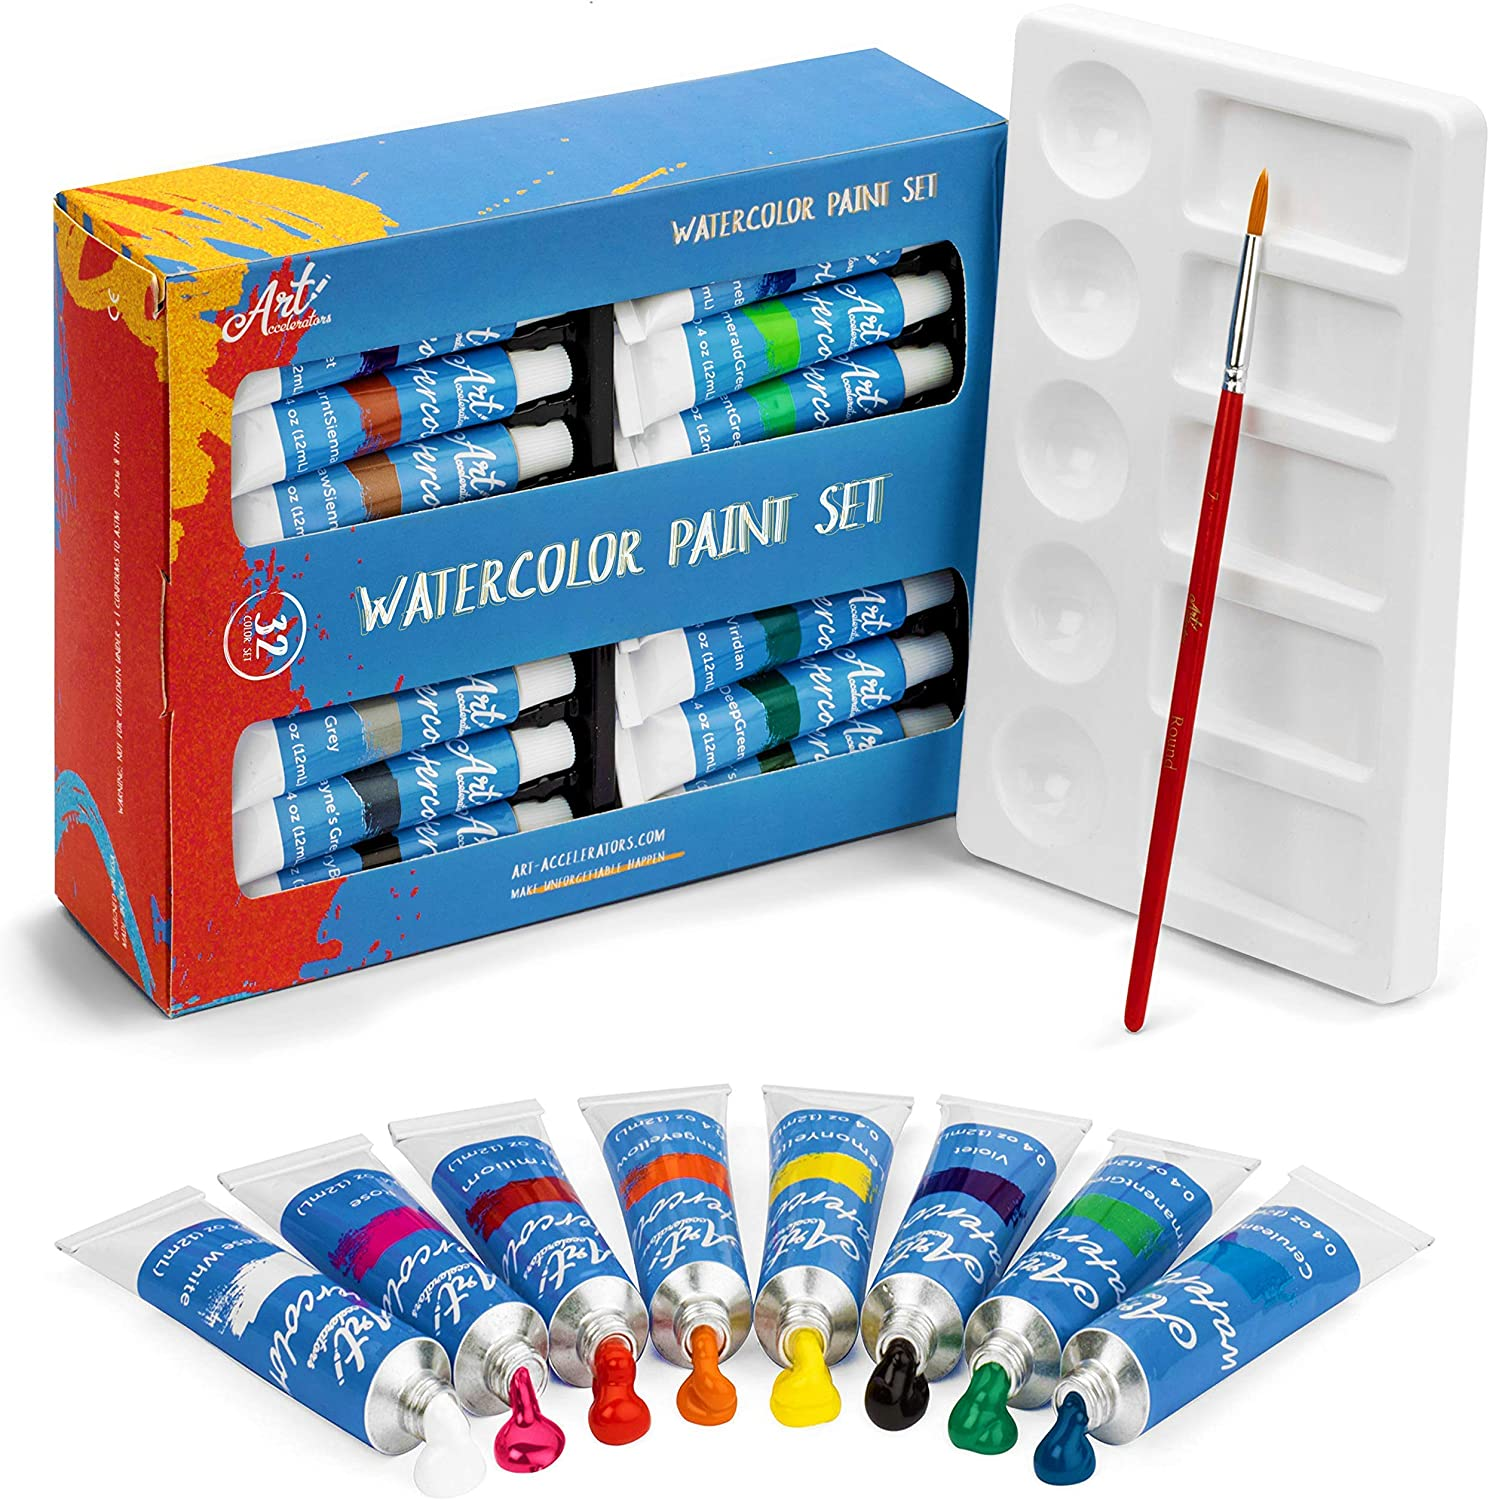 Watercolor Paint Set - 32 Water Color for Adults Paints Jacksonville Mall Artists Max 59% OFF